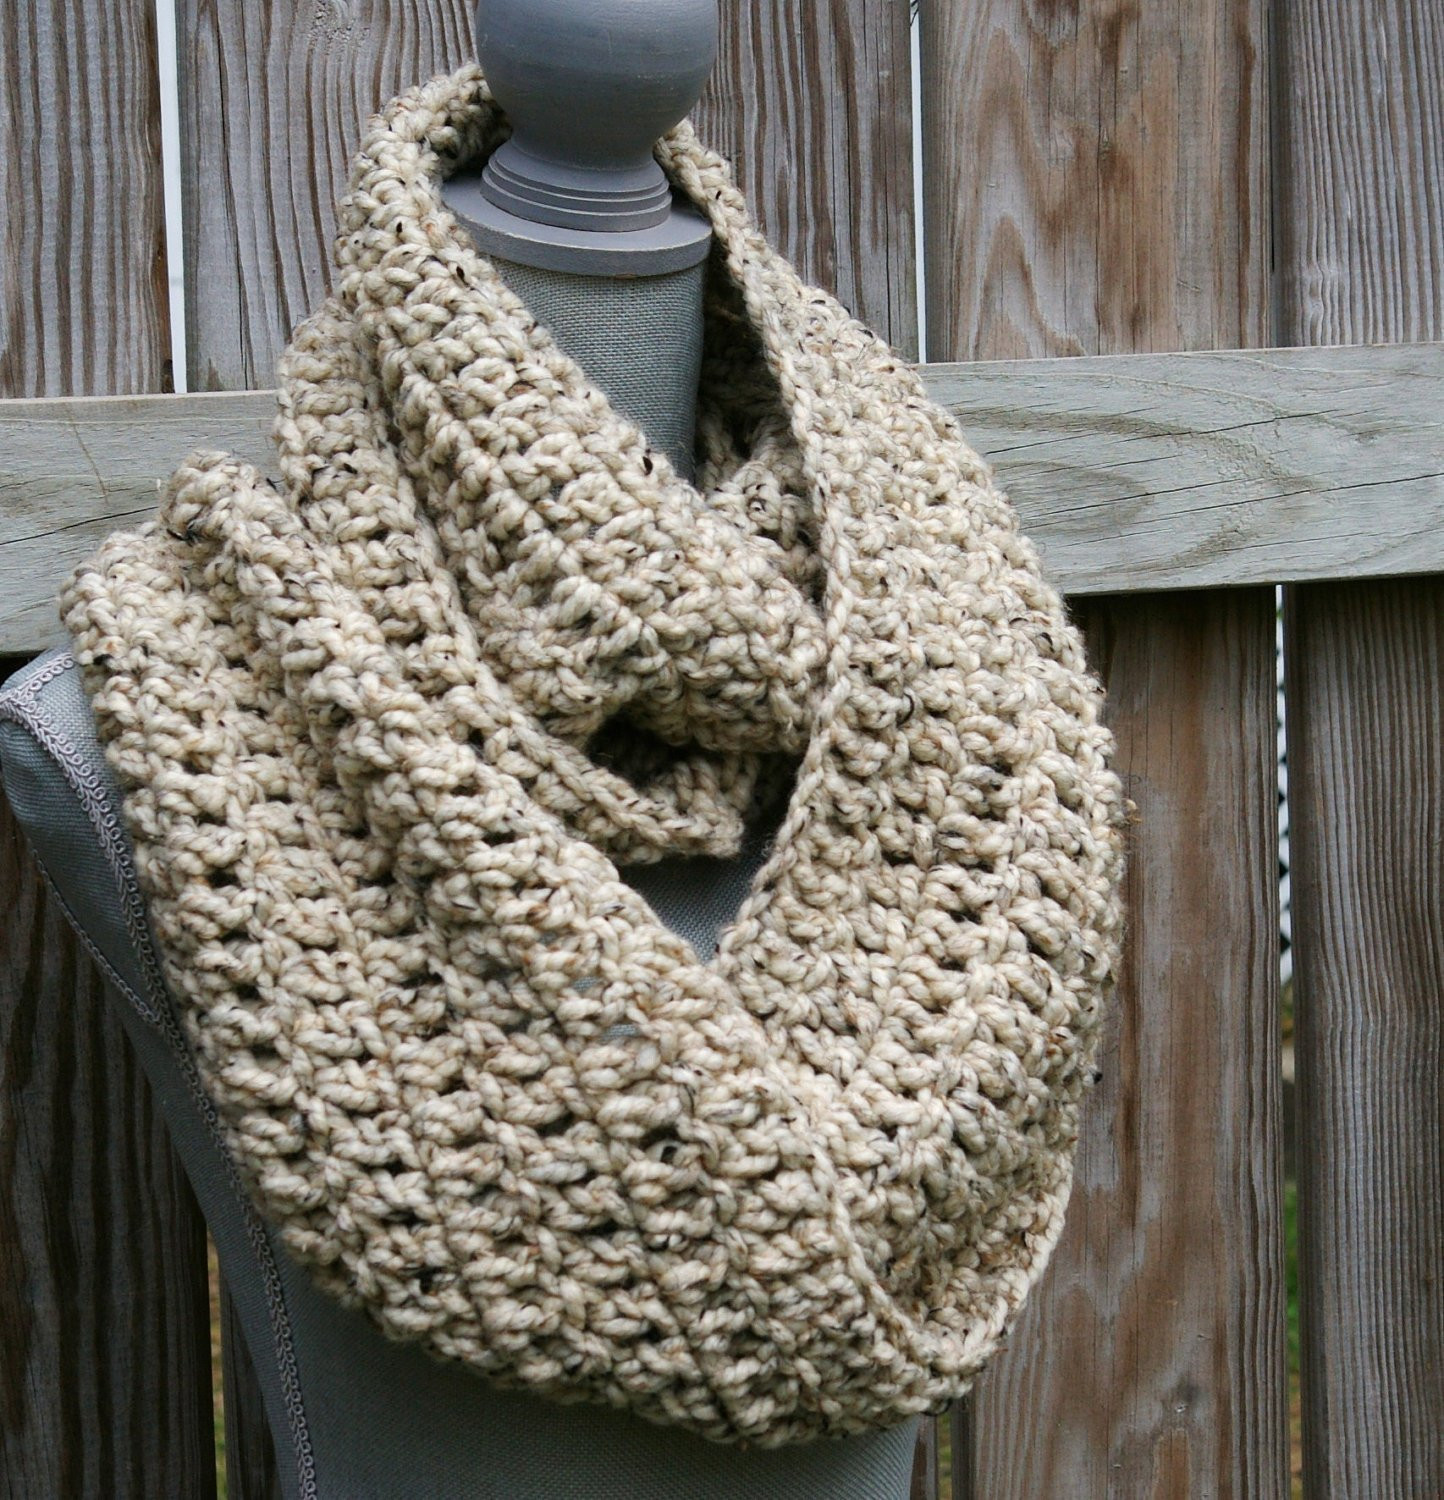 Crochet Infinity Scarves Fresh Infinity Scarf Crochet Circle Scarf Chunky Cowl by Of New 44 Photos Crochet Infinity Scarves